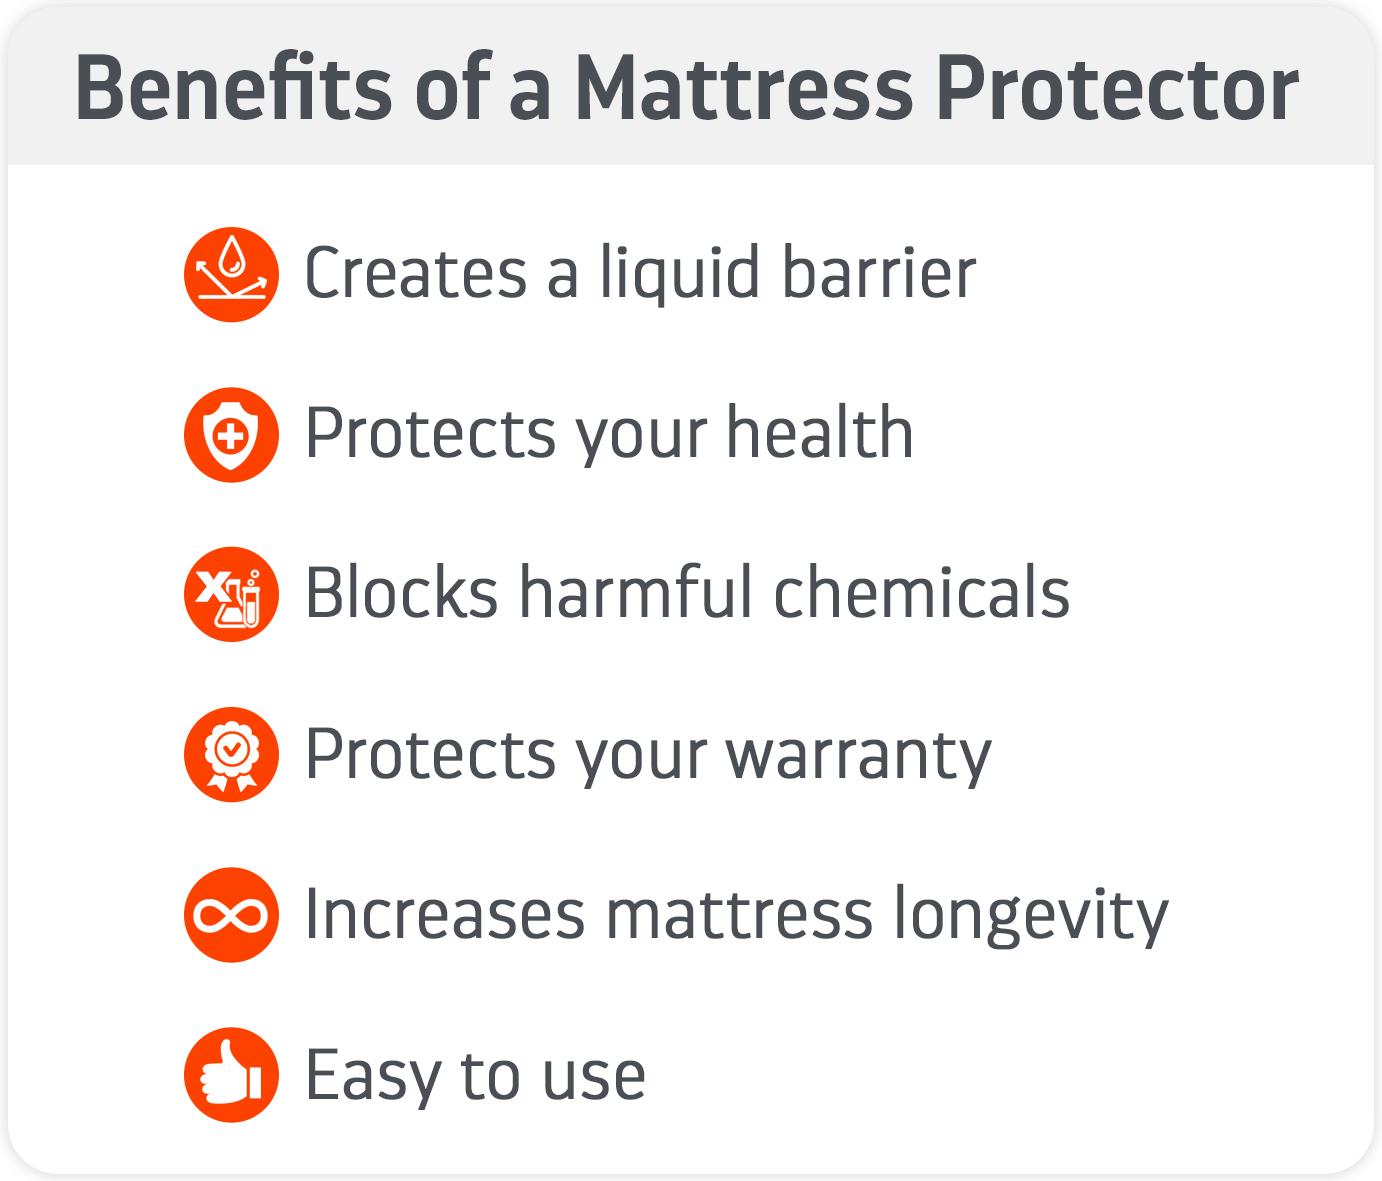 Benefits of a Mattress Protector